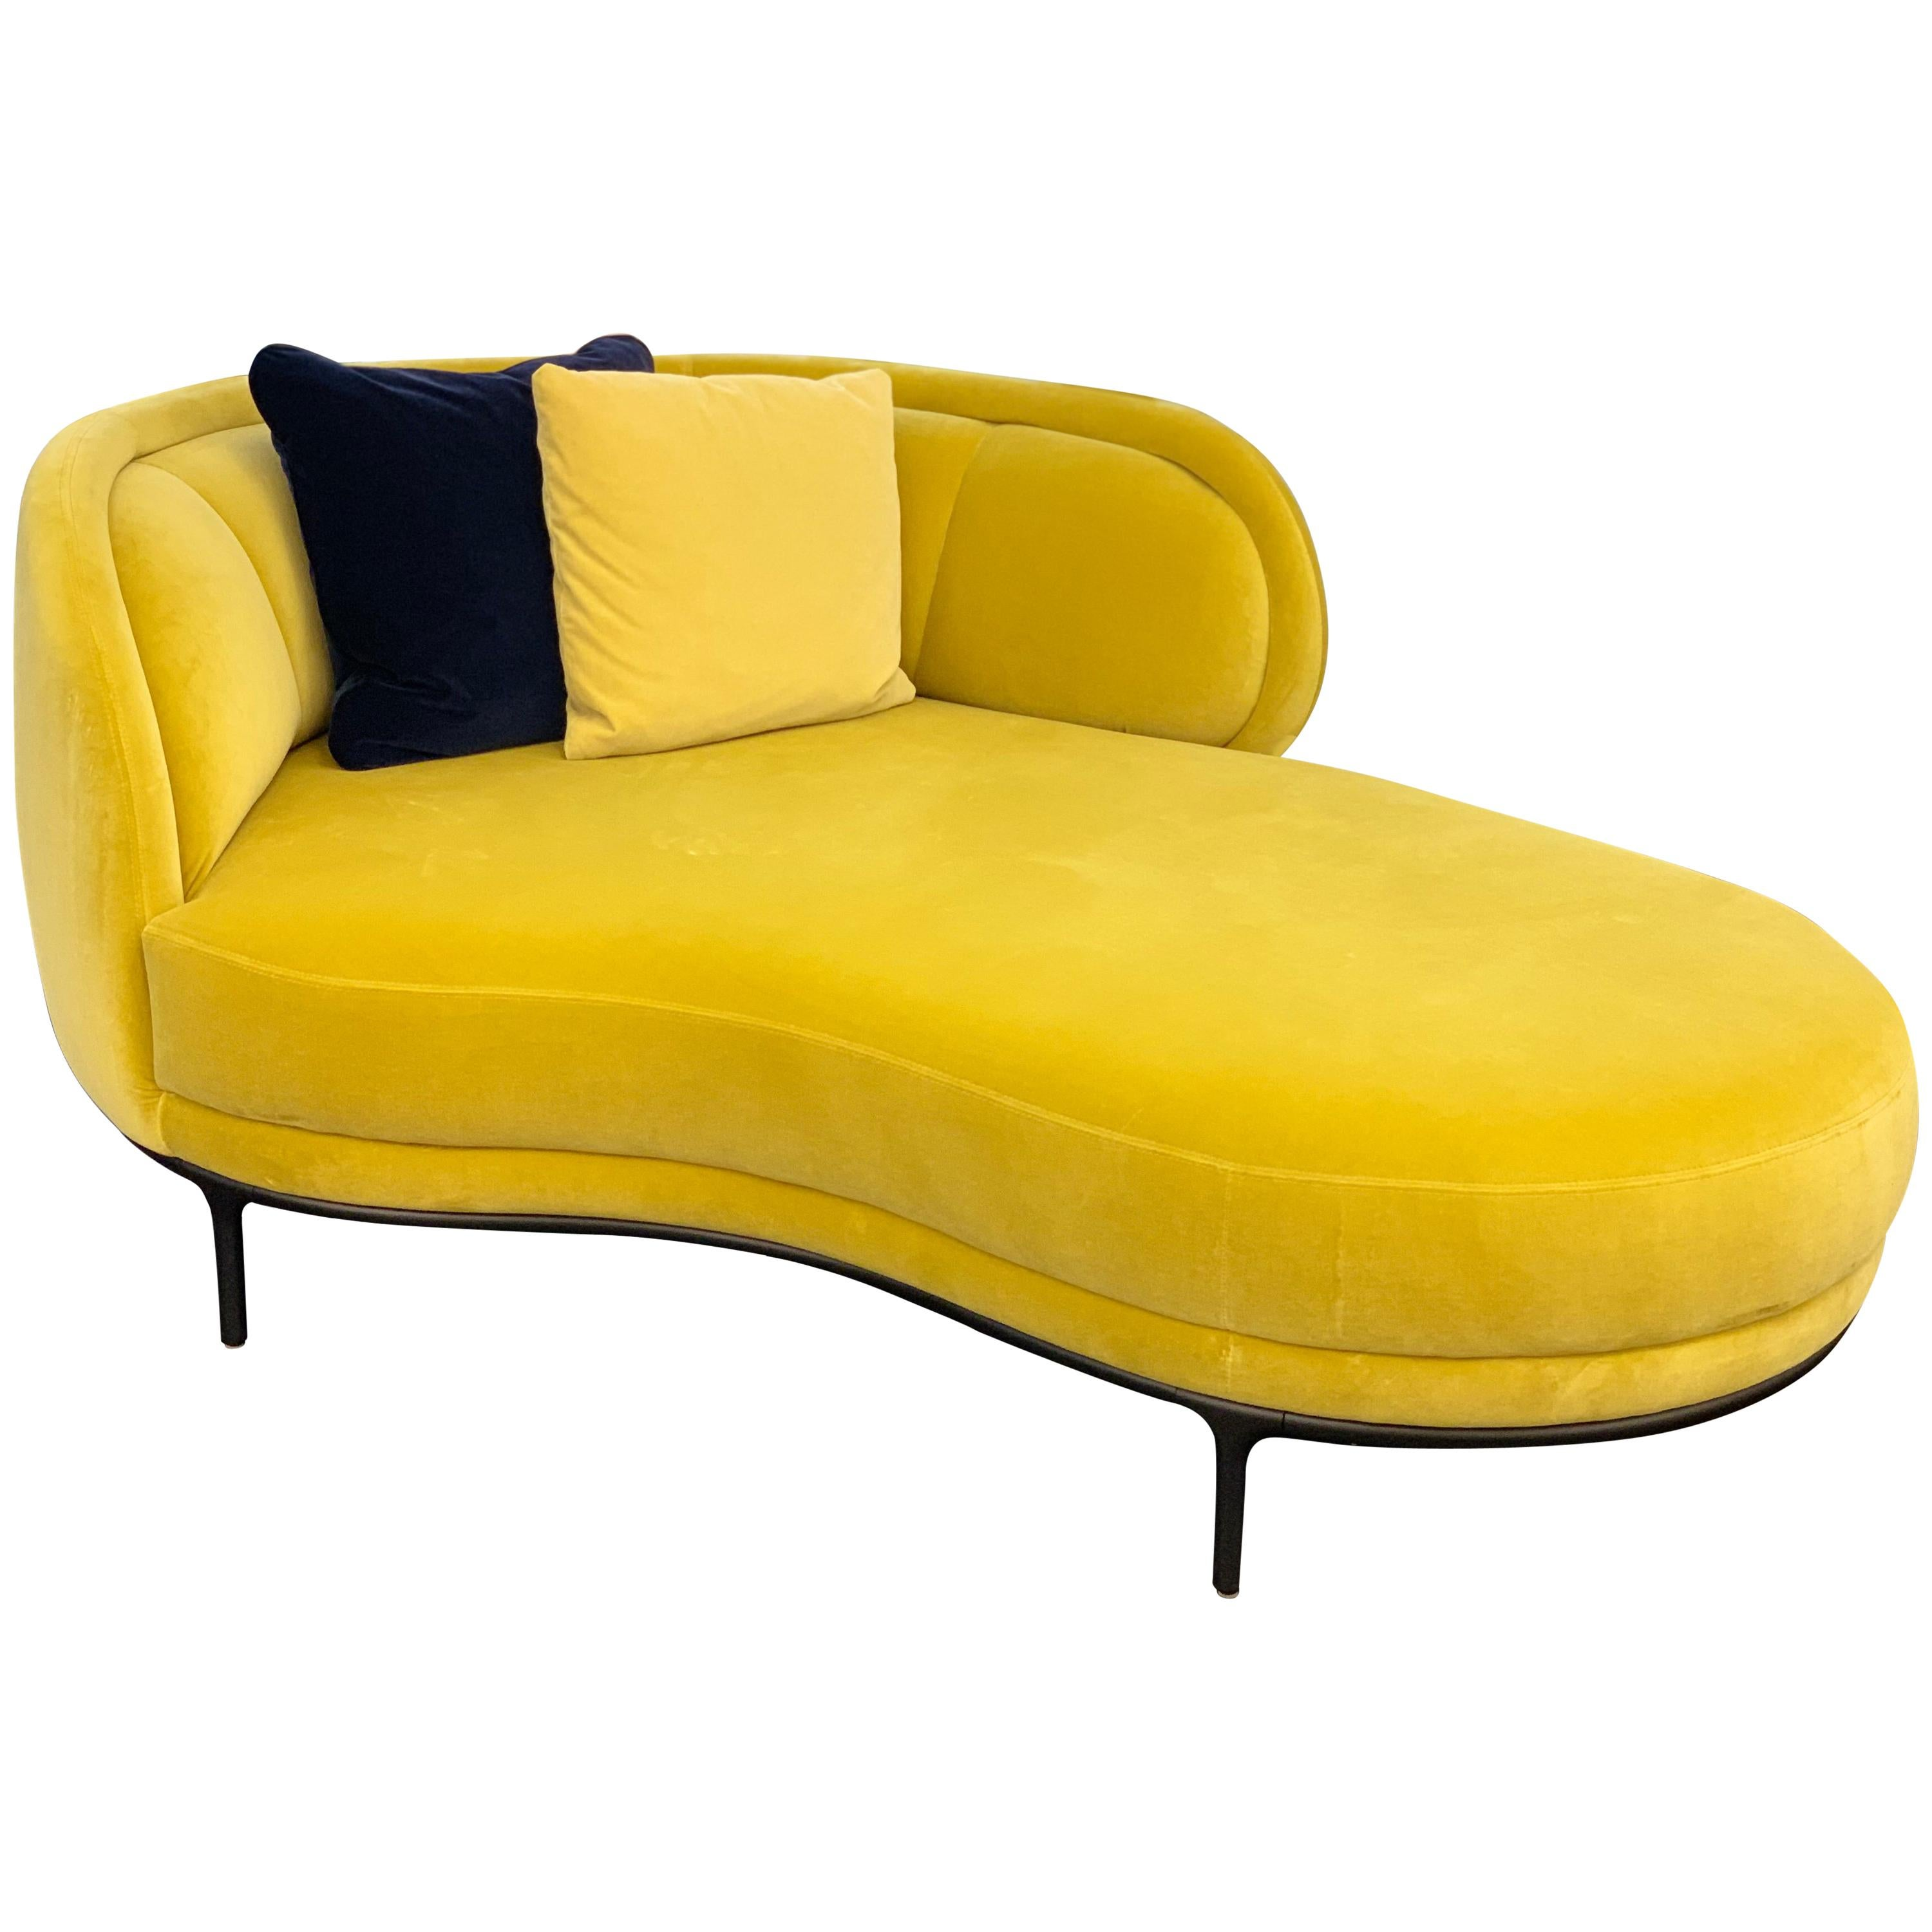 Wittmann Vuelta Chaise Lounge By Jaime Hayon In Yellow Raf Simmons Velvet At 1stdibs